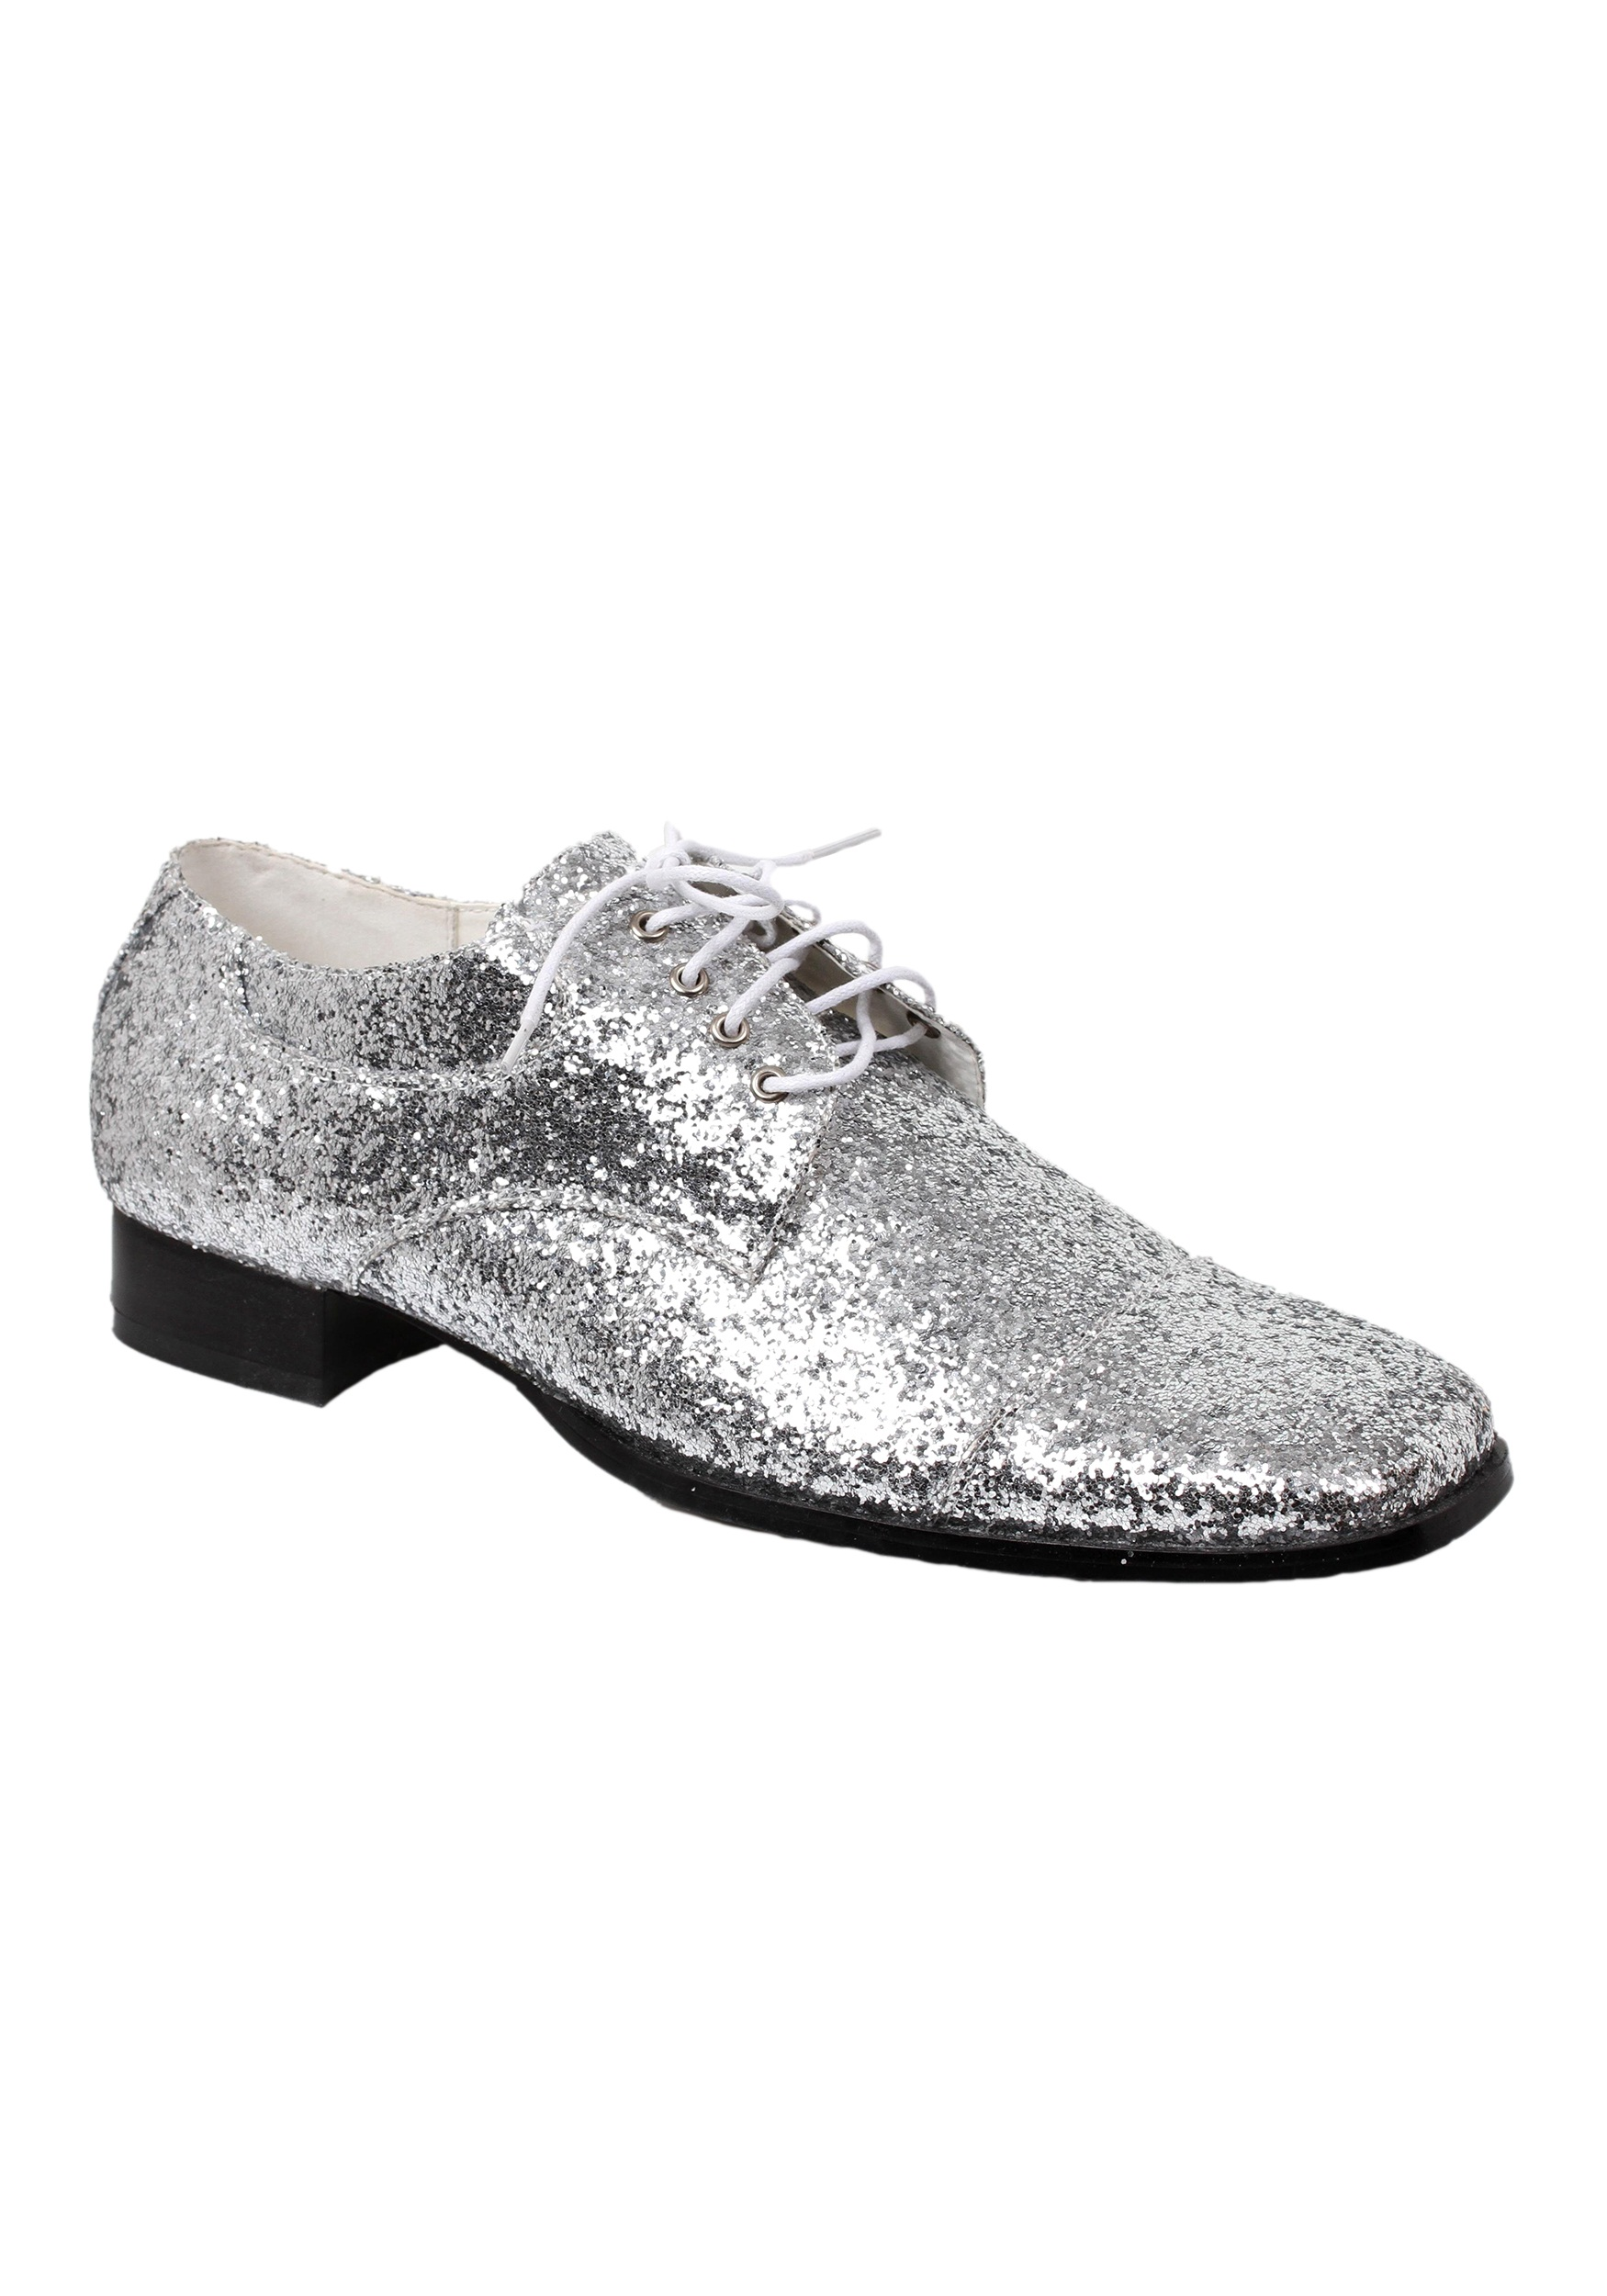 INOpets.com Anything for Pets Parents & Their Pets Men's Silver Glitter Disco Shoes